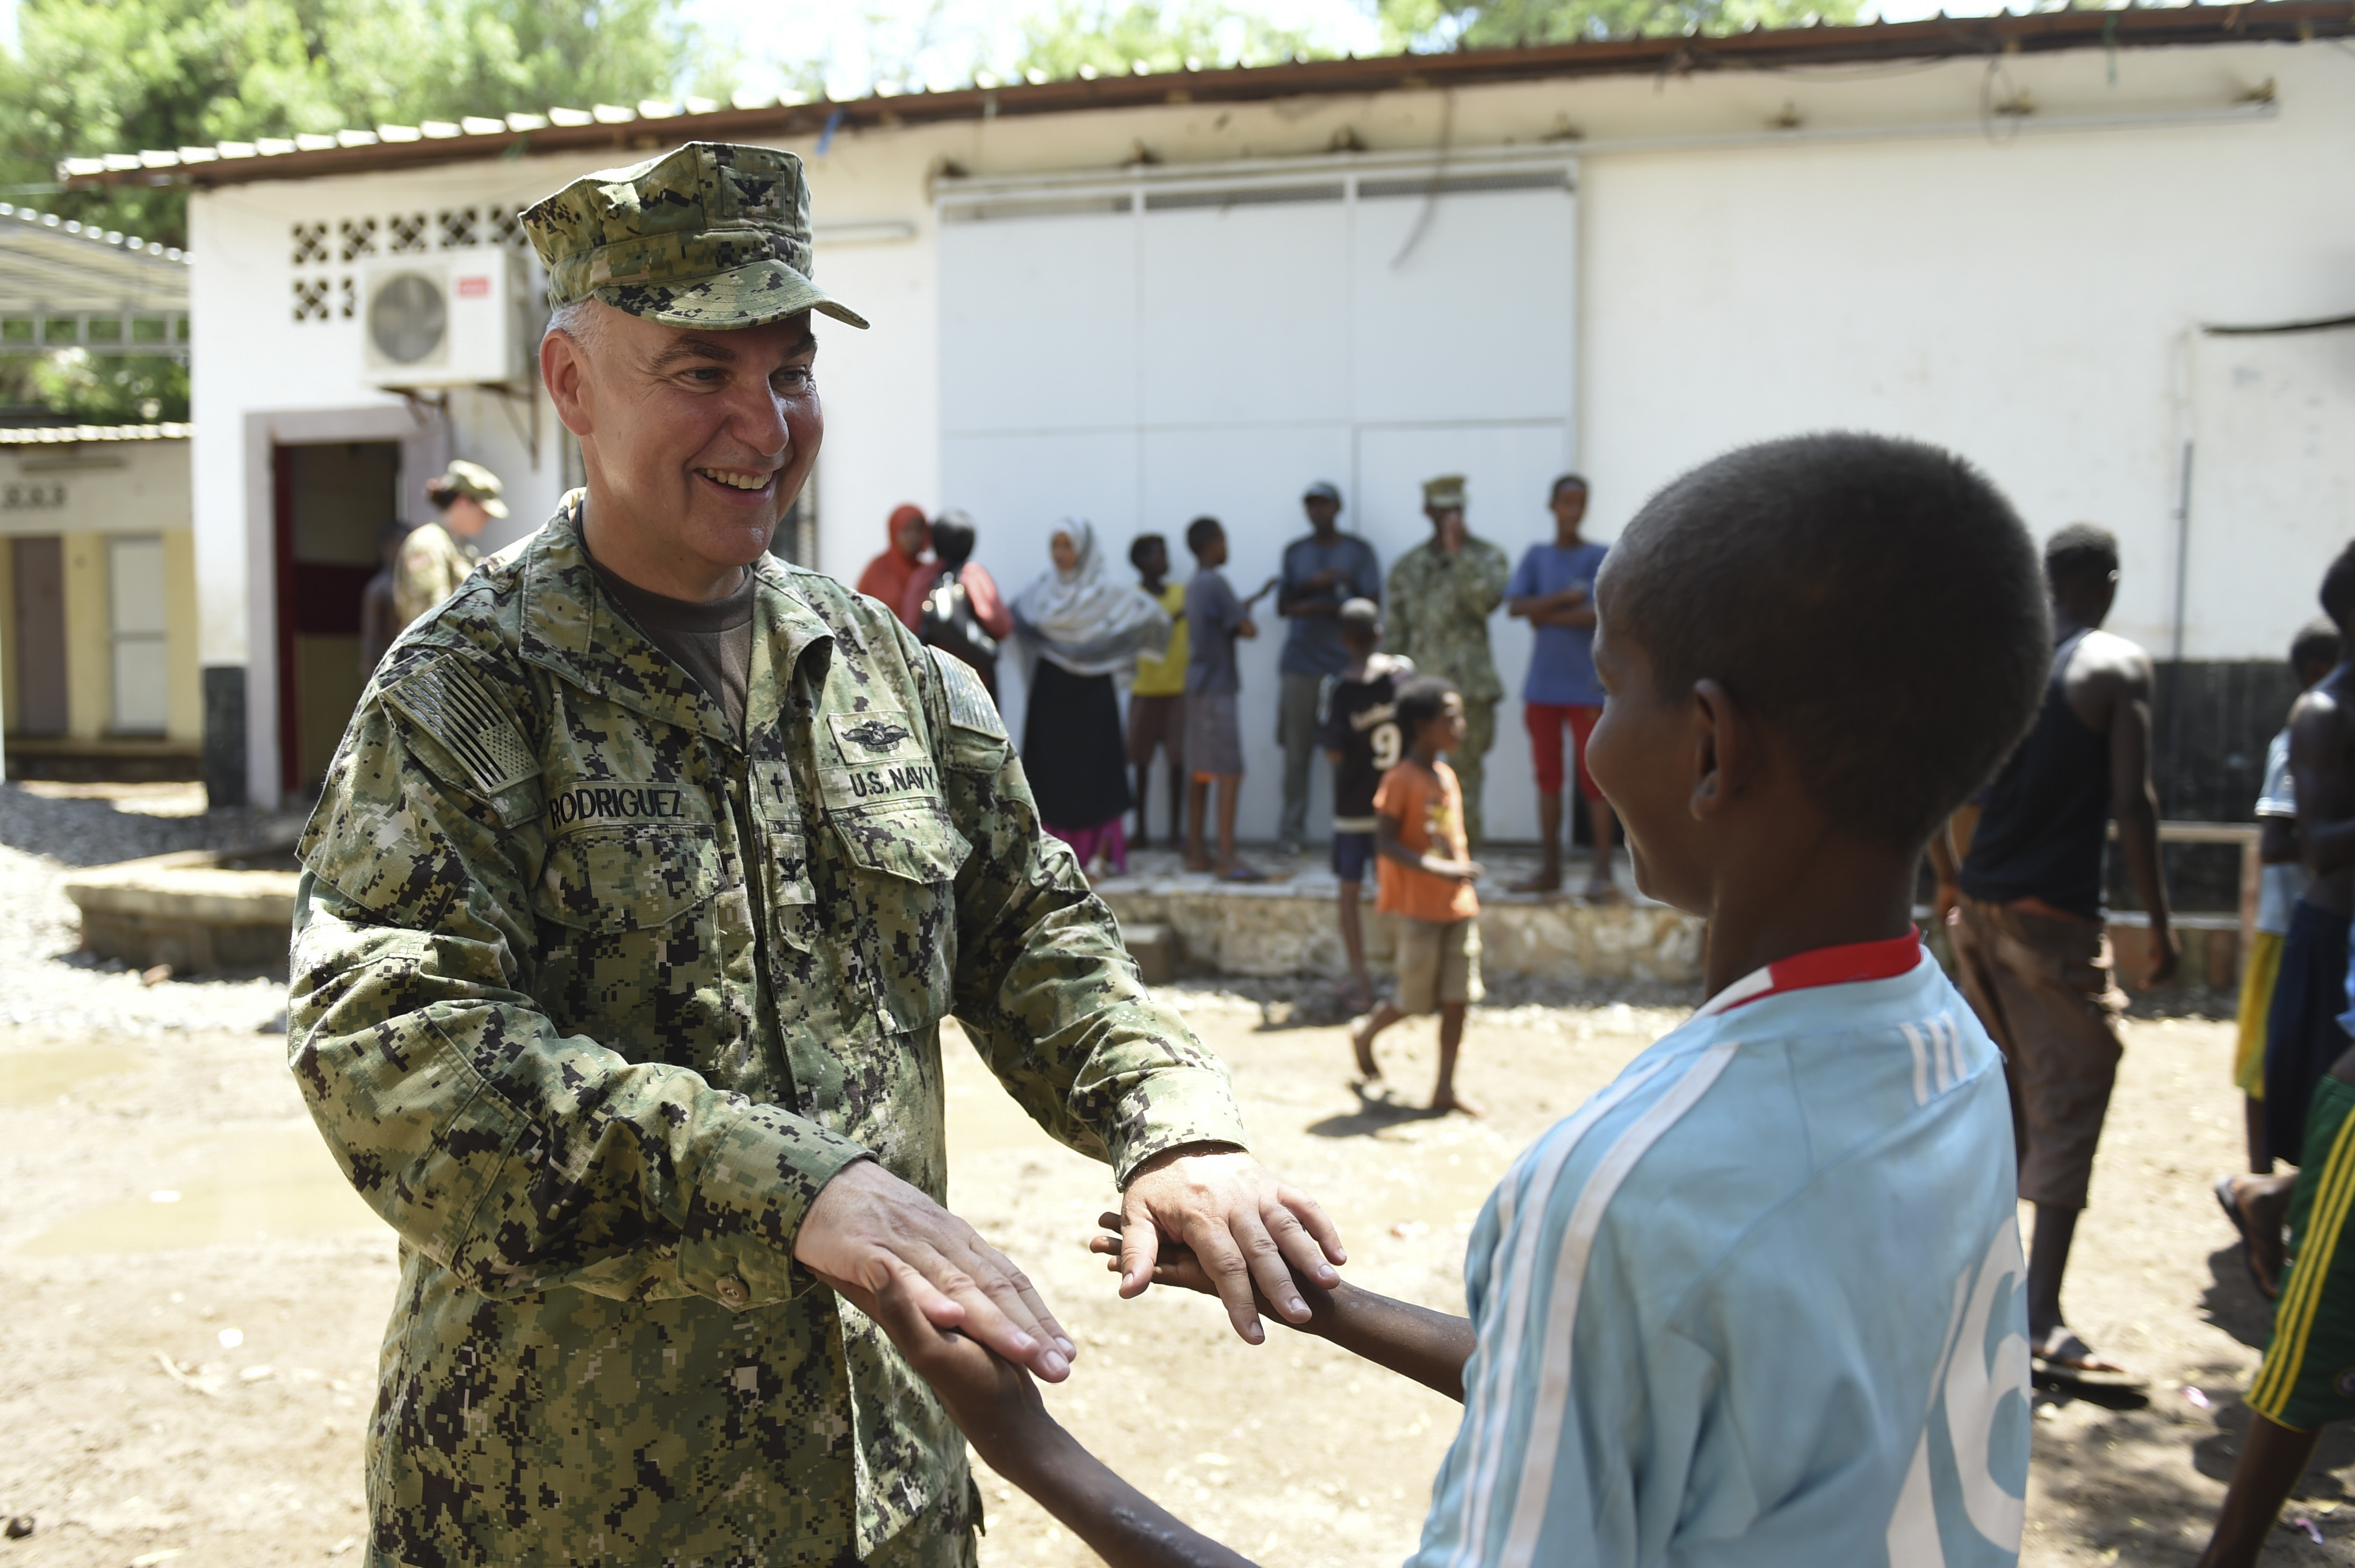 U.S. Navy Capt. David Rodriguez, Combined Joint Task Force- Horn of Africa, Director of Religious Affairs plays a hand game with a child from Caritas Djibouti in downtown Djibouti, May 16, 2017. The Combined Joint Task Force - Horn of Africa Religious Affairs Office, organizes frequent trips to Caritas Djibouti as part of an ongoing effort to build sustainable partnerships throughout East Africa. (U.S. Air Force photo by Eboni Prince)